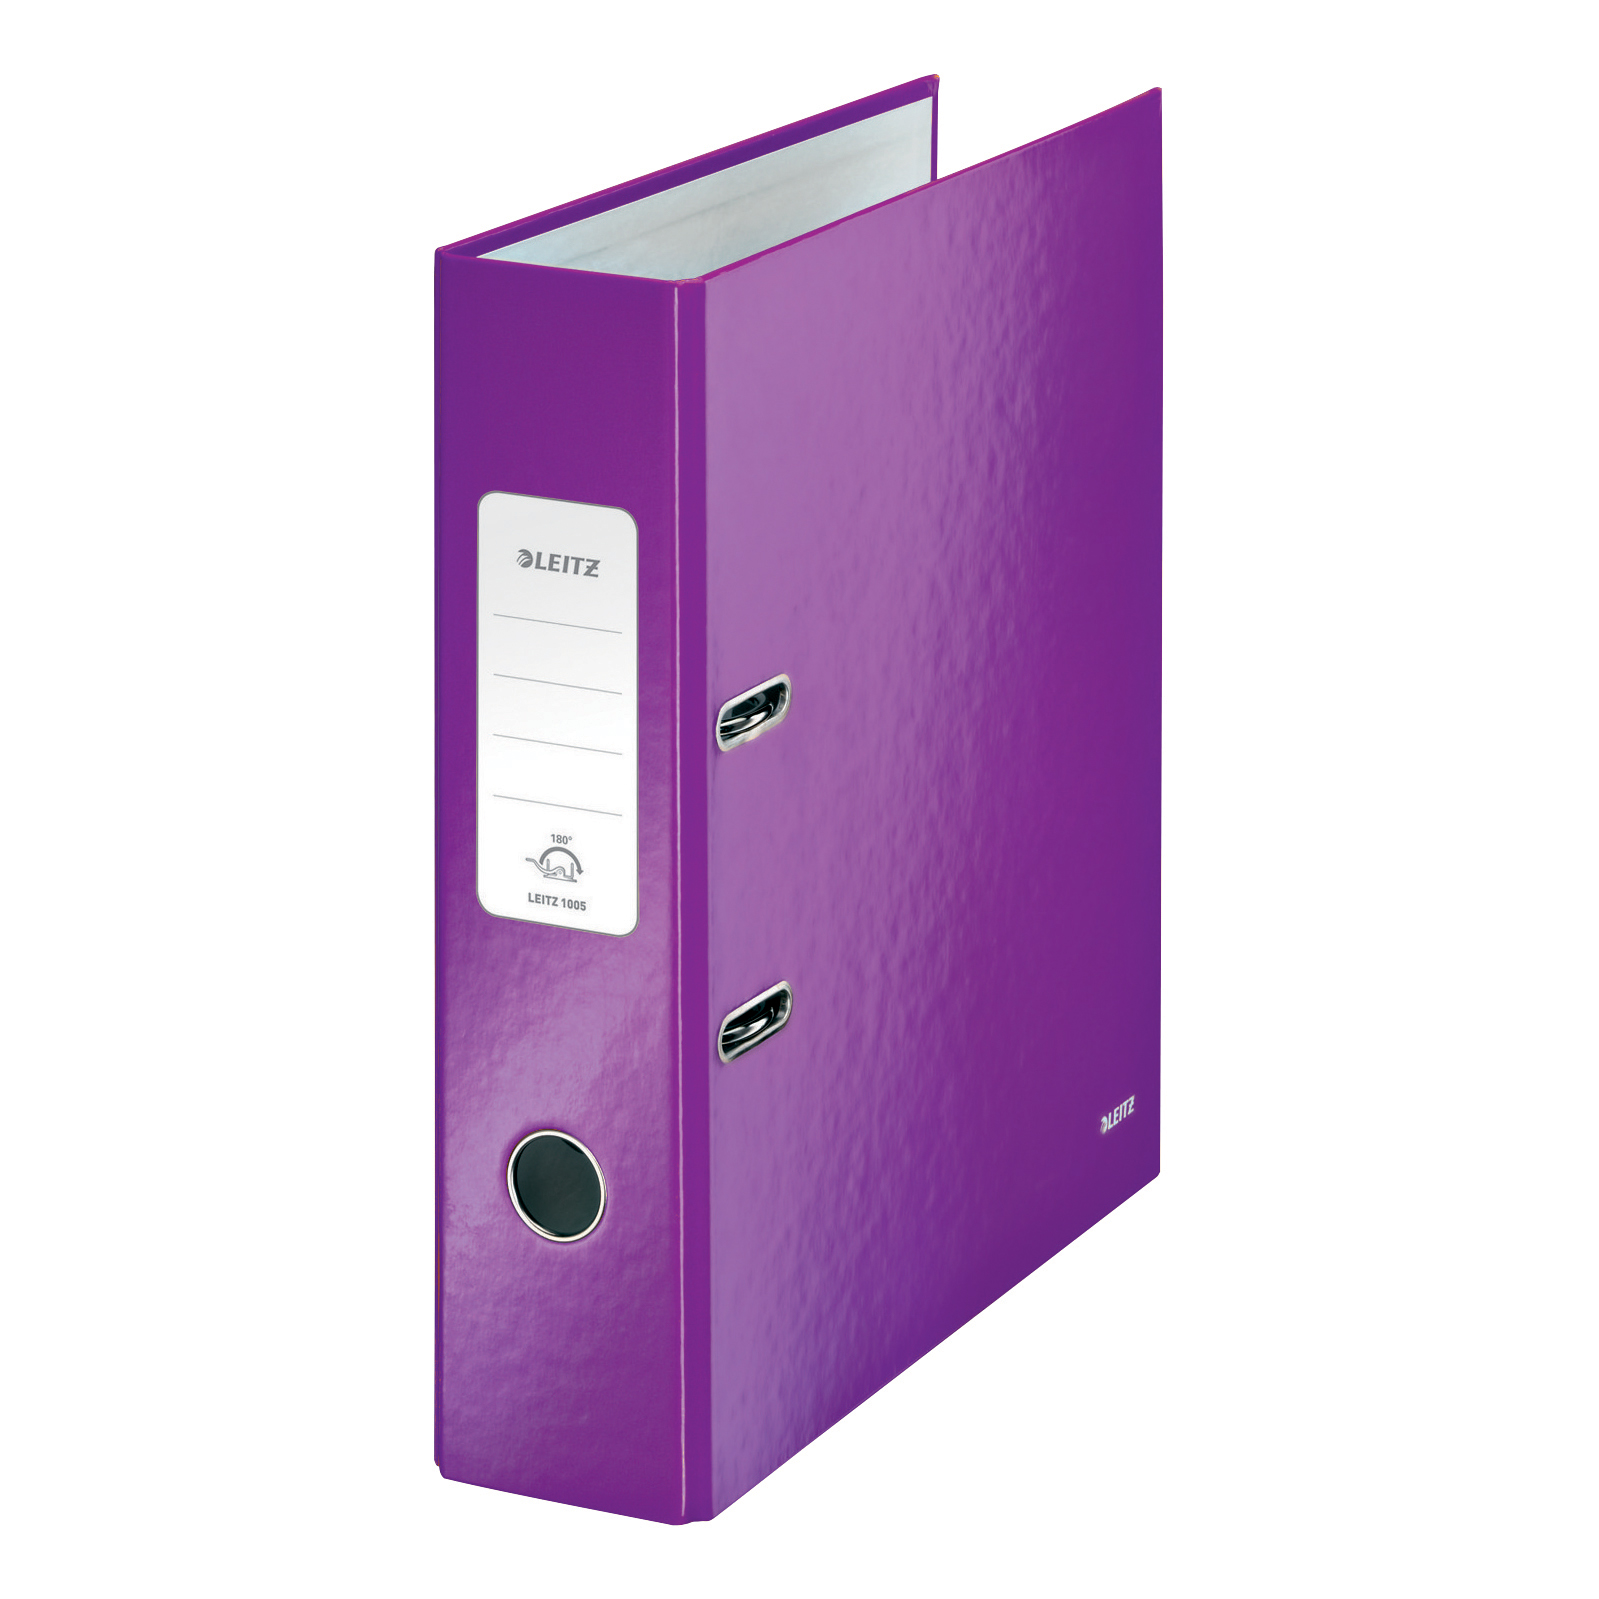 Leitz WOW Lever Arch File 80mm Spine for 600 Sheets A4 Purple Ref 10050062 Pack 10